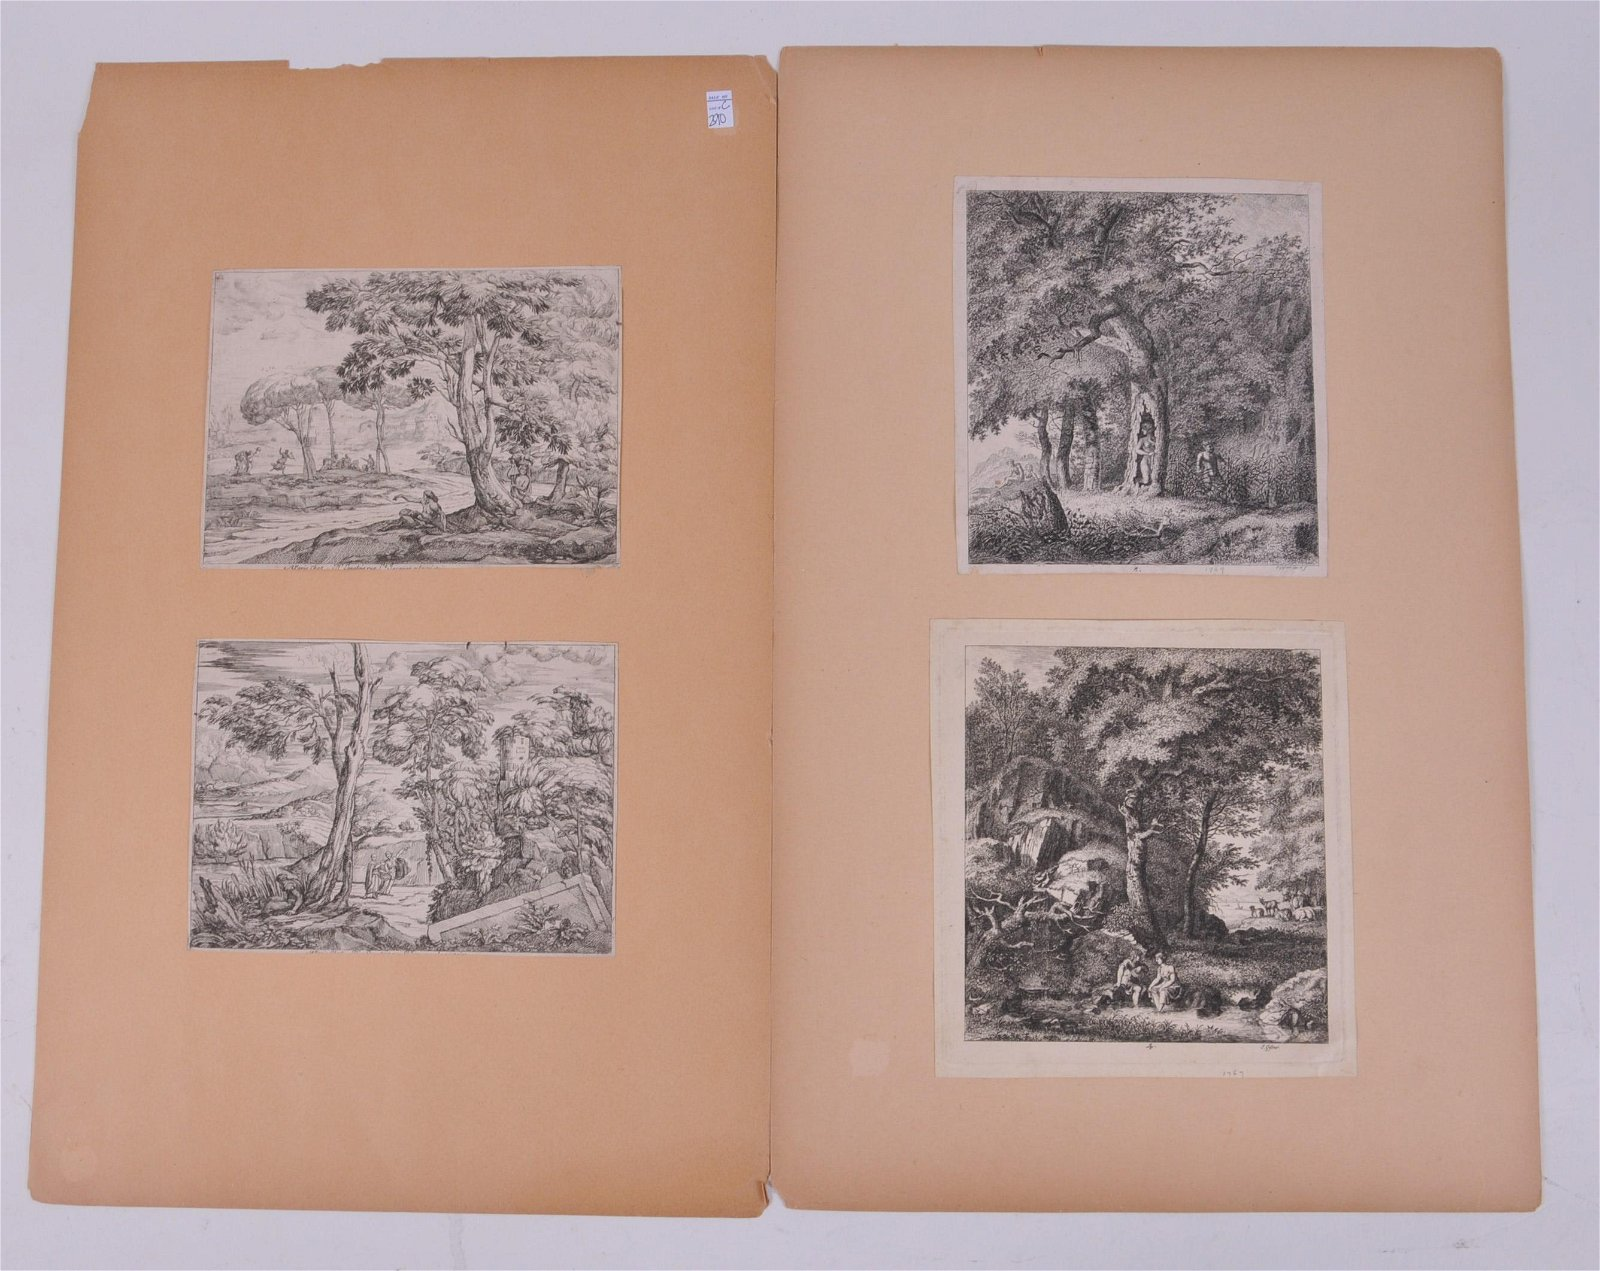 [4] French engravings, each of Classical landscapes